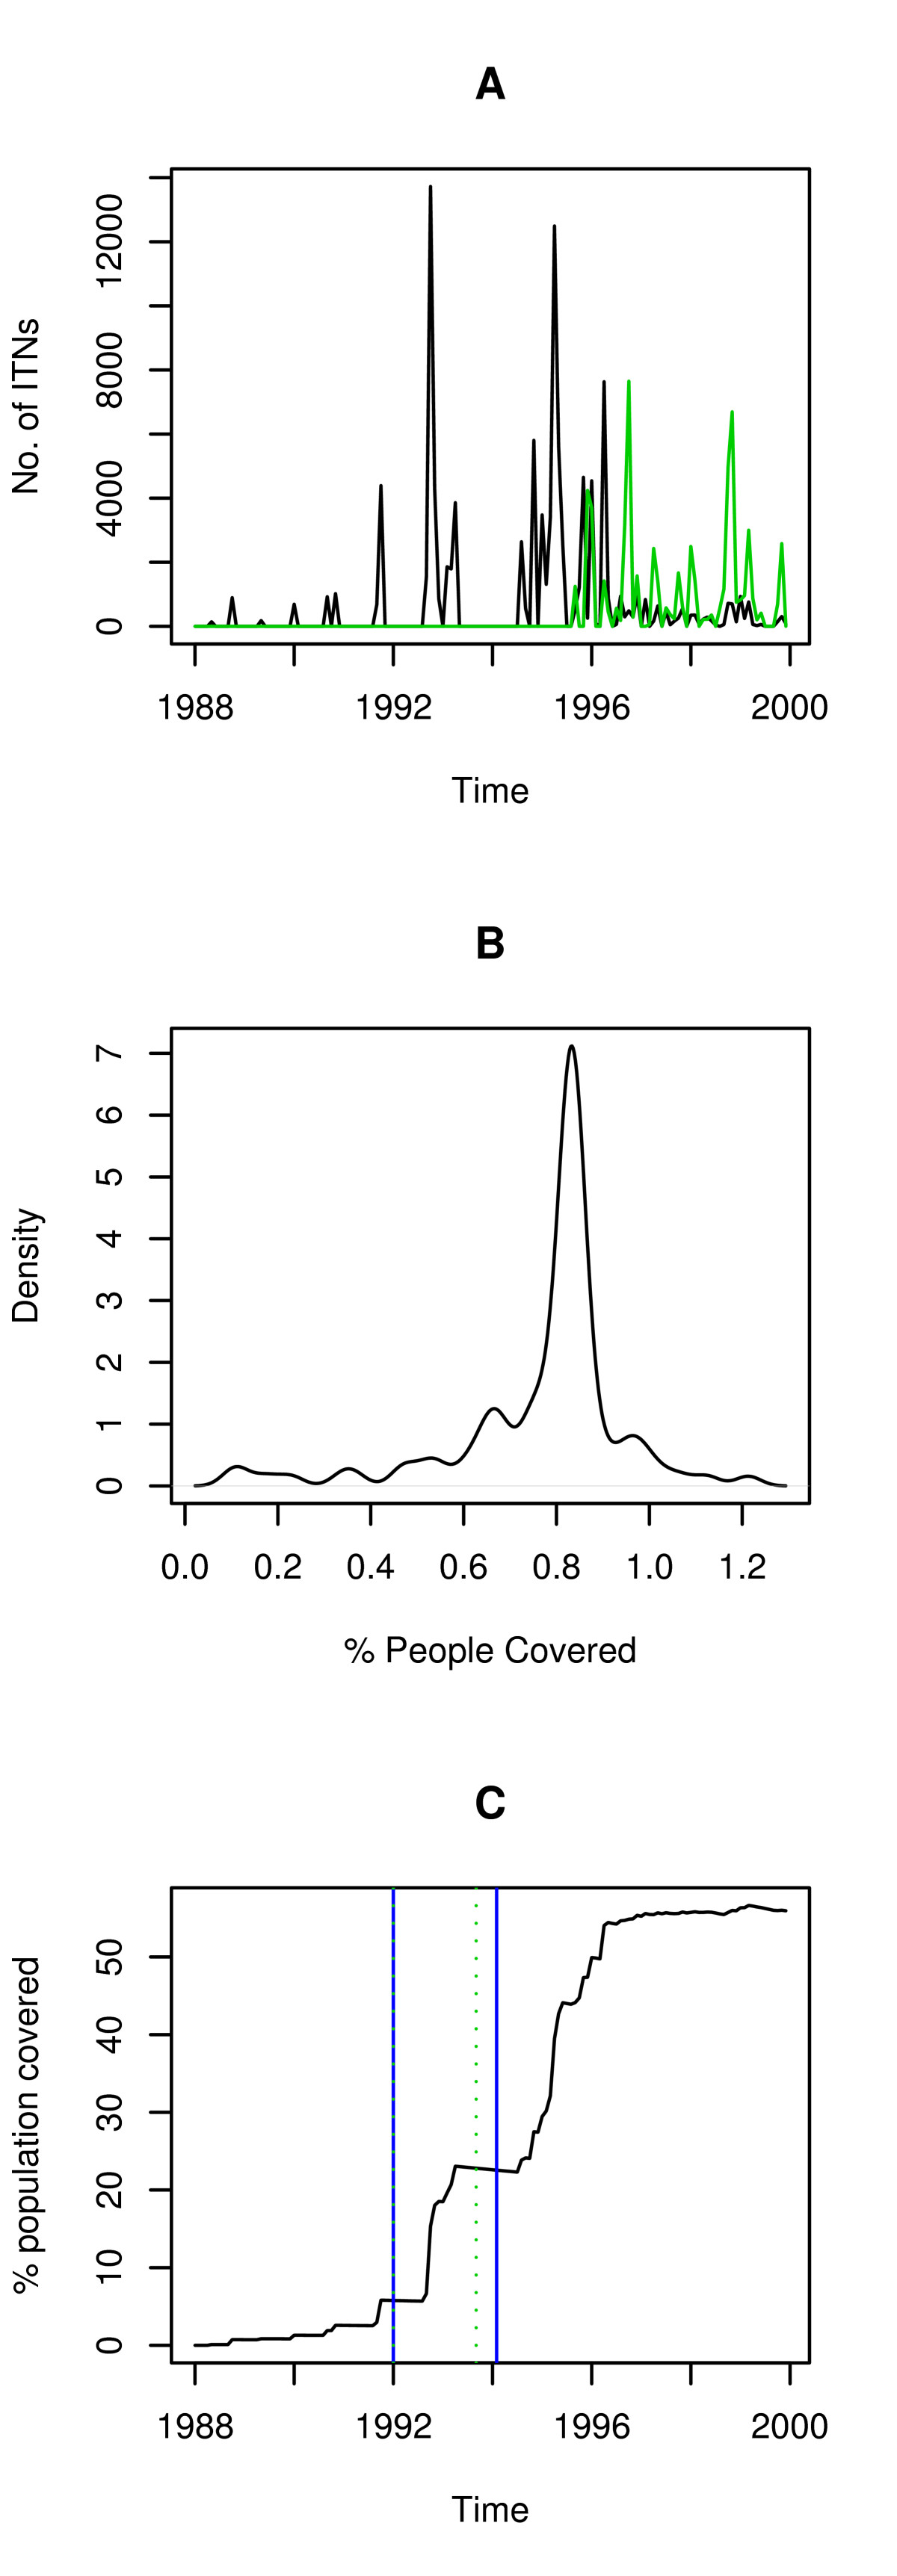 http://static-content.springer.com/image/art%3A10.1186%2F1475-2875-7-100/MediaObjects/12936_2008_Article_575_Fig3_HTML.jpg